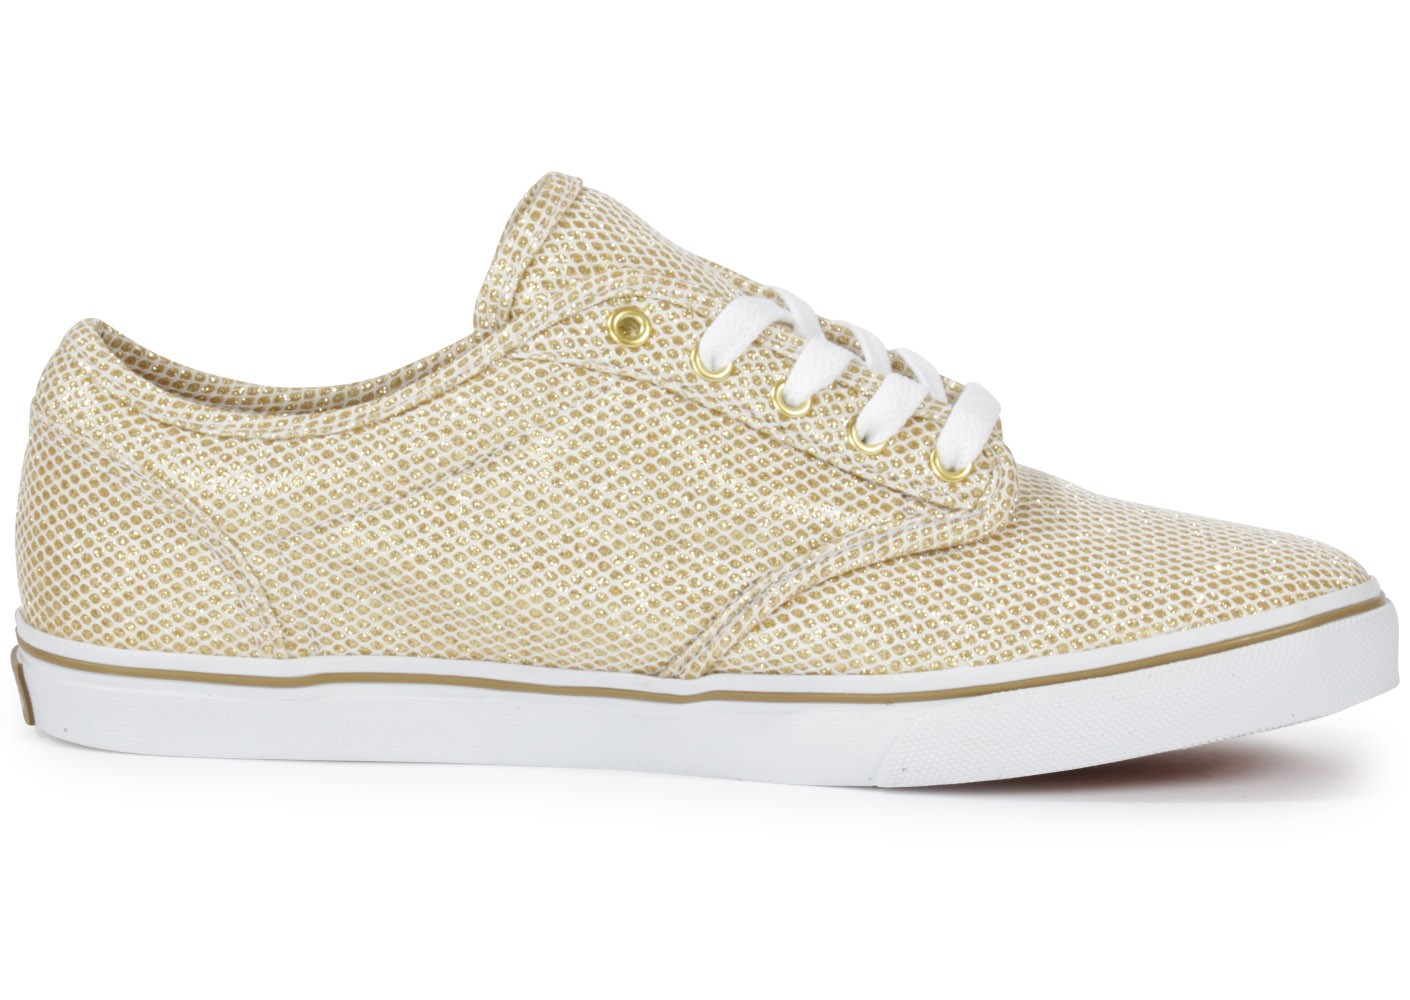 Vans Atwood Paillette Or - Chaussures Chaussures - Chausport